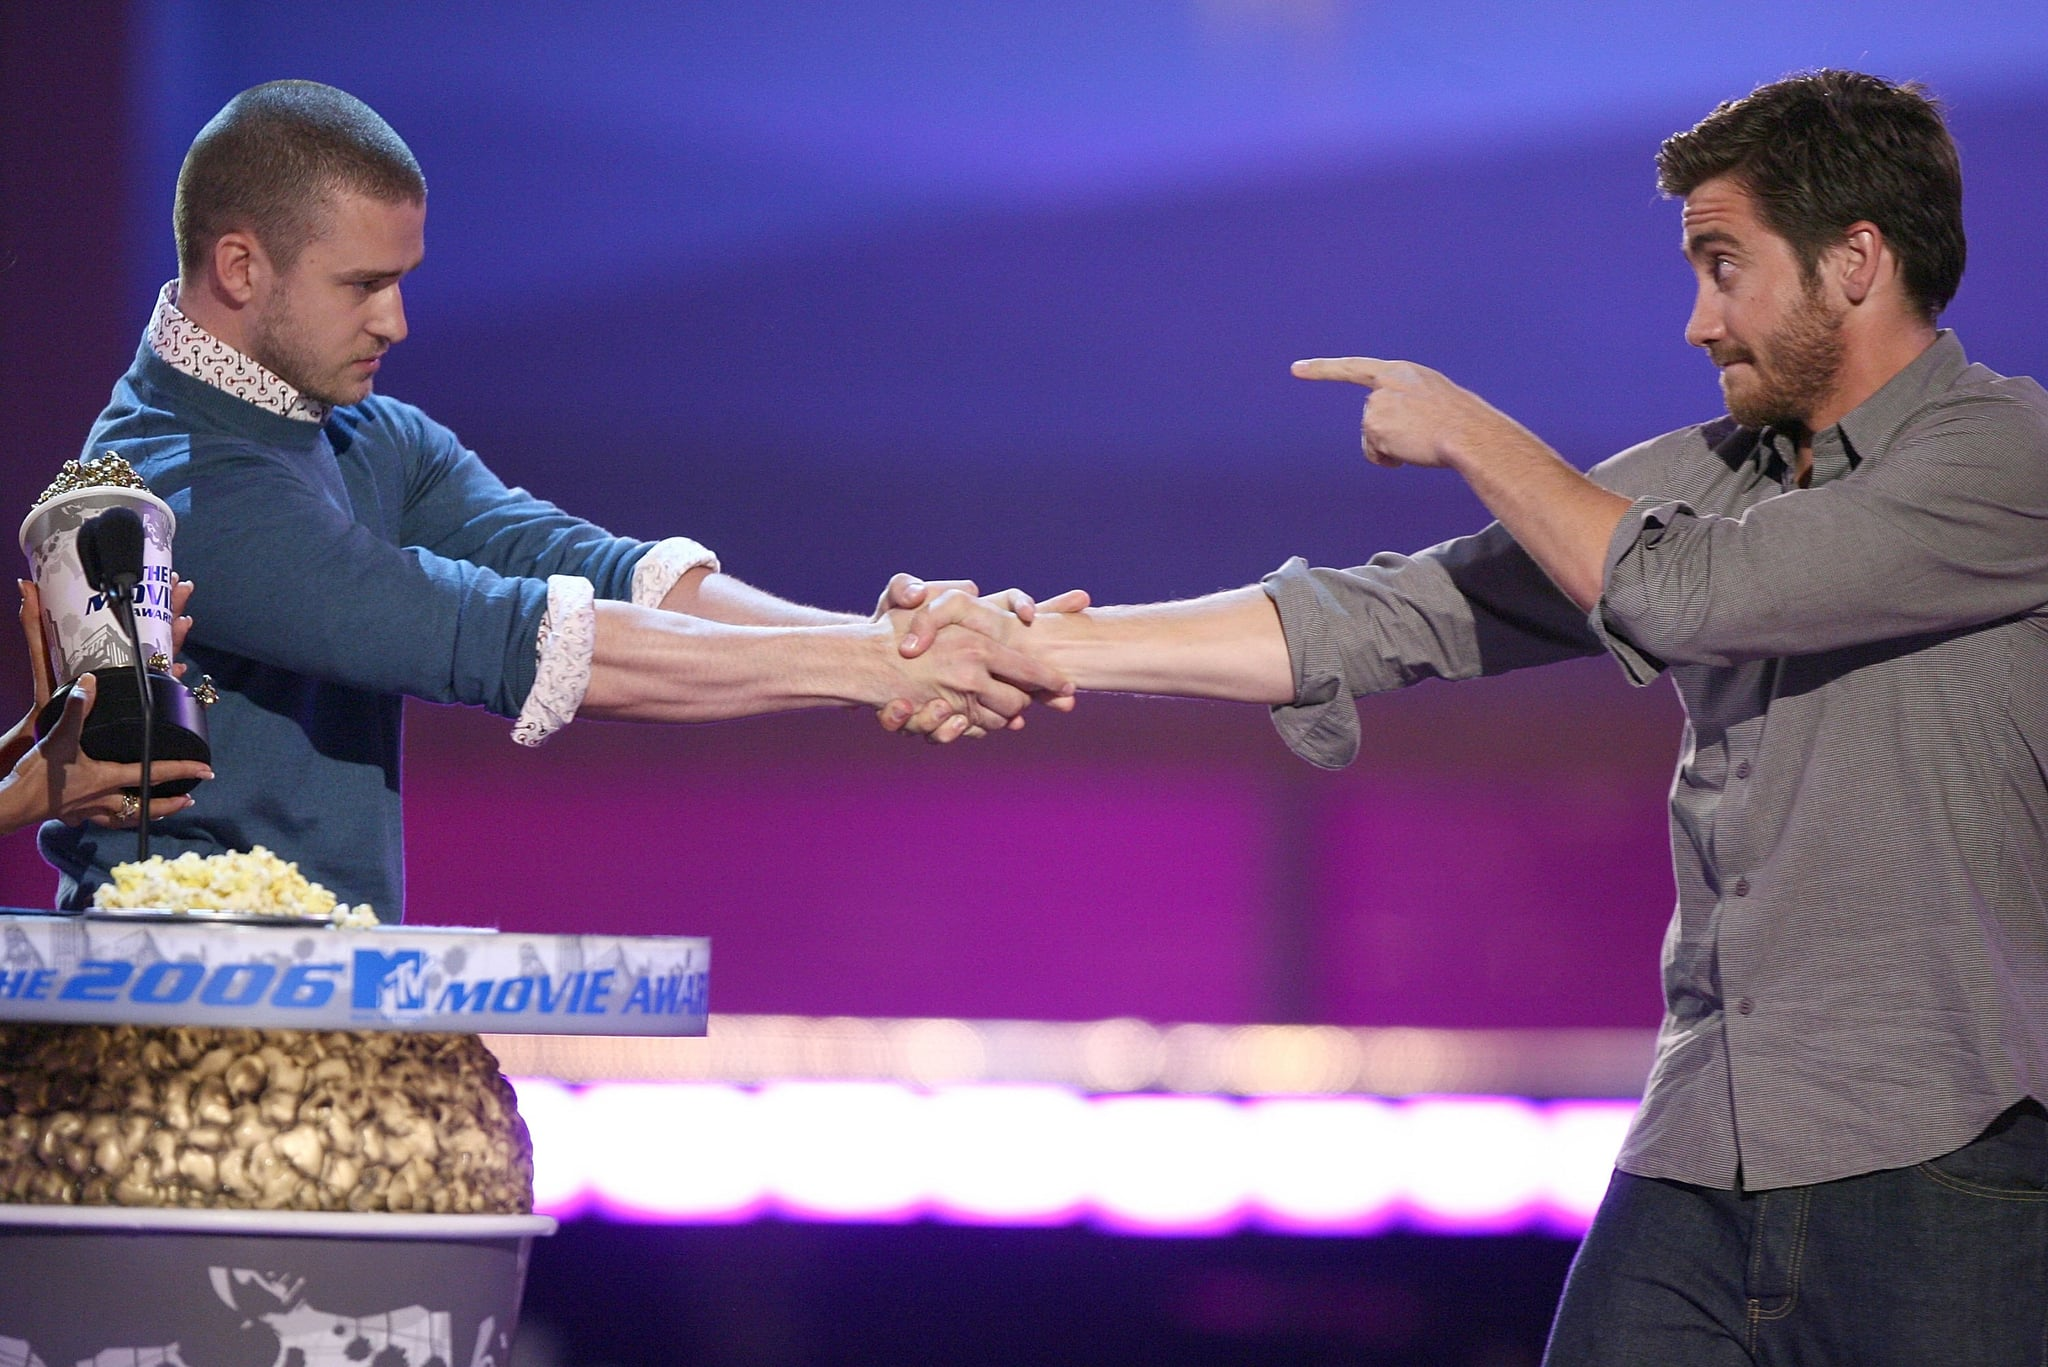 Jake shared a cute onstage moment with Justin Timberlake as he presented Jake the best kiss award for his role in Brokeback Mountain at the 2006 MTV Movie Awards.